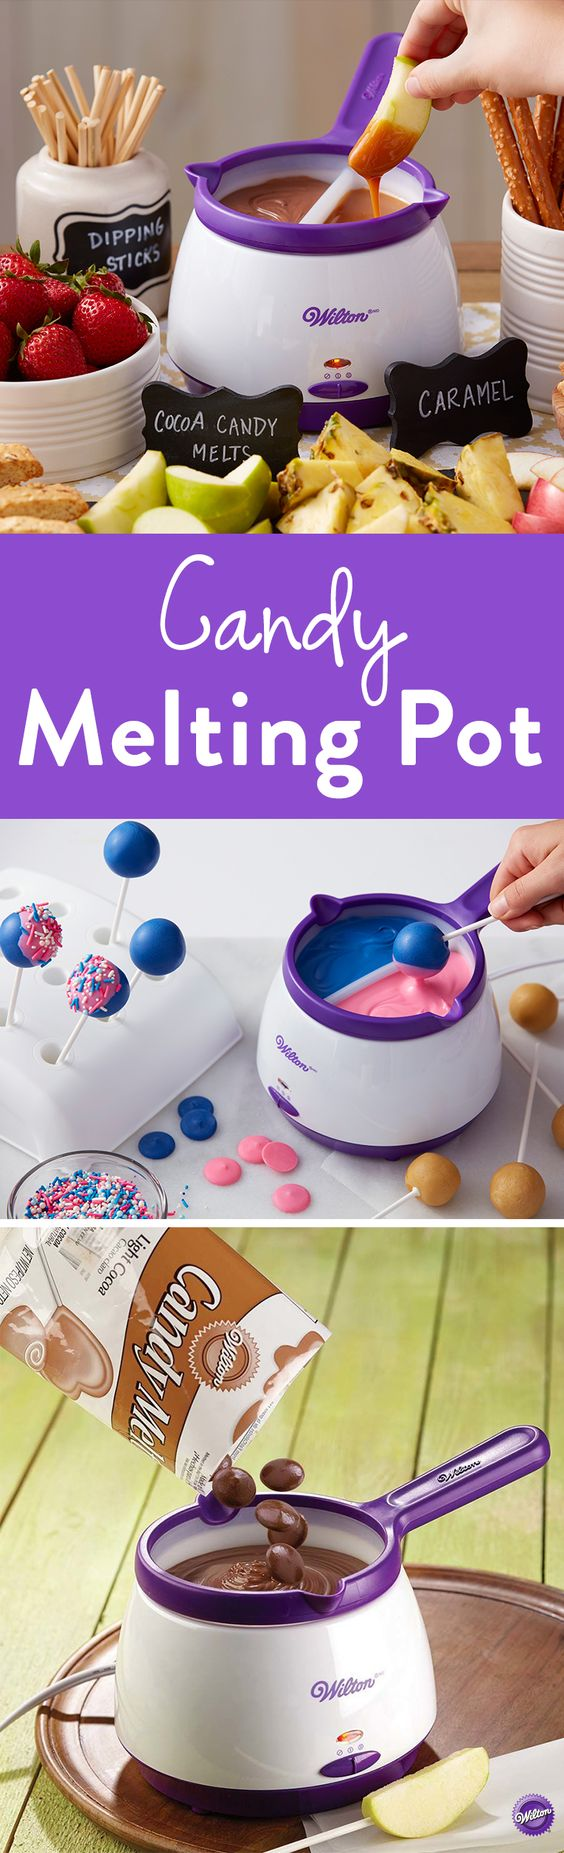 Candy Melts Melting Pot - Easily melt up to 2 ½ cups of Candy Melts candy for dipped strawberries, pretzels, bark candy and more in the Wilton Candy Melts Candy Melting Pot. It includes an easy-clean silicone pot, so when you're done dipping, just chill to harden candy and gently squeeze the silicone pot and the candy falls away!